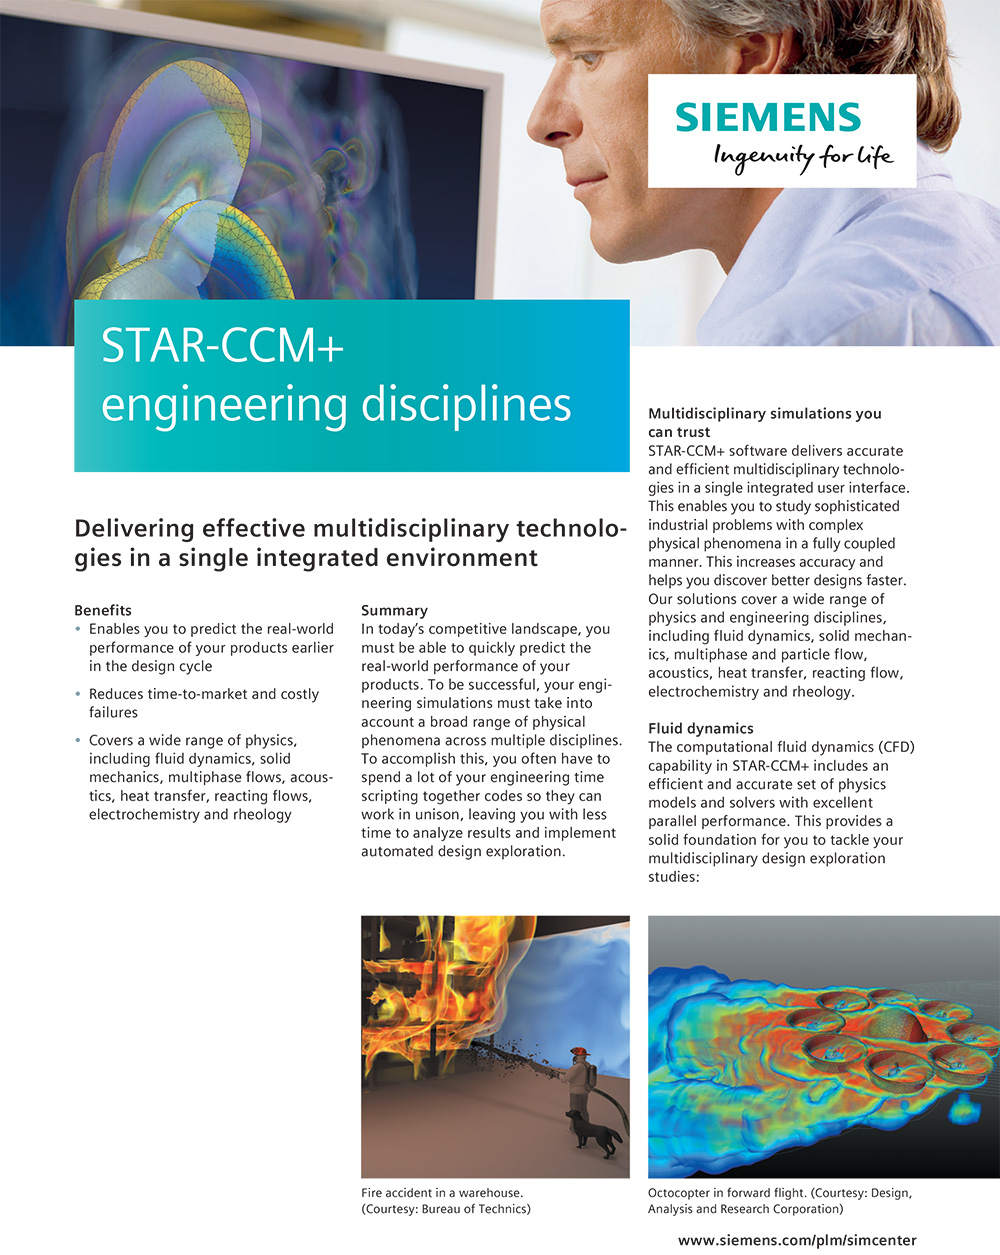 STAR CCM engineering disciplines 2018